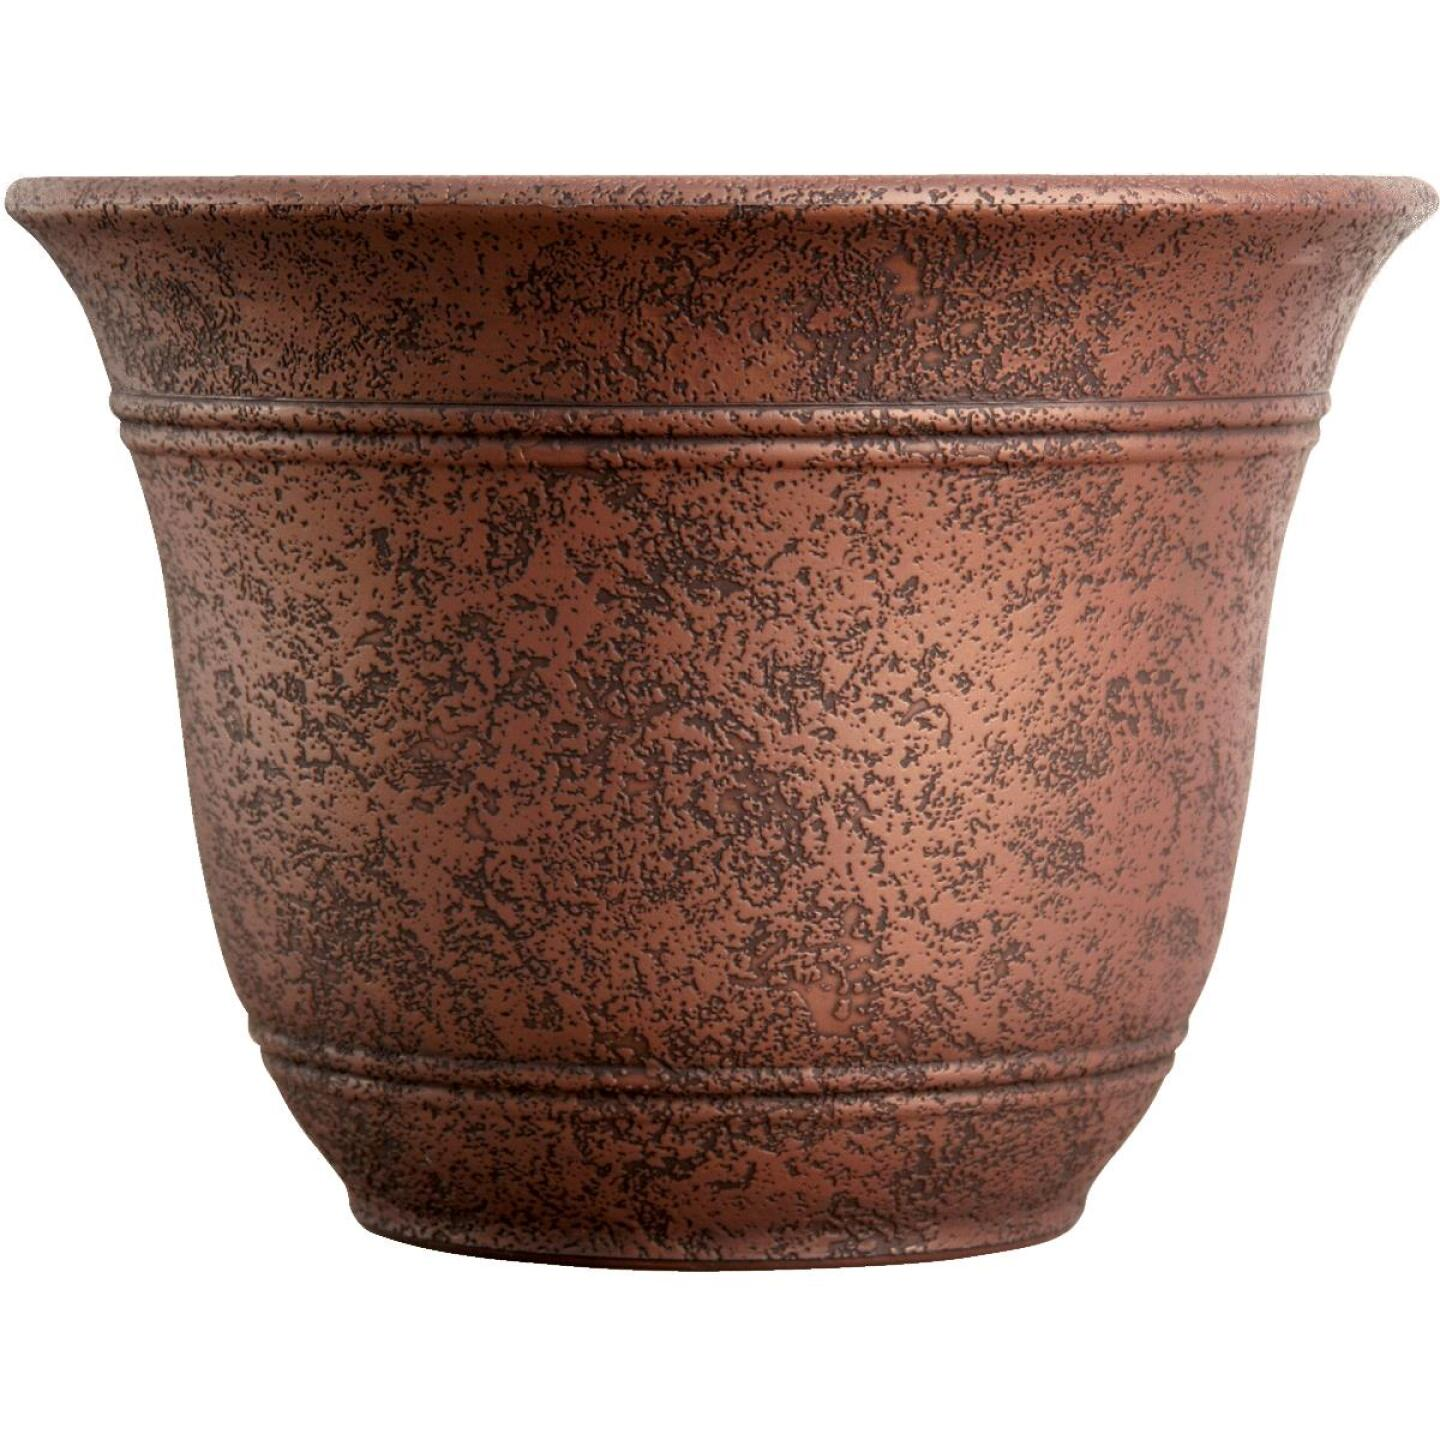 Listo Sierra 7.38 In. H. x 10 In. Dia. Rustic Redstone Poly Flower Pot Image 1